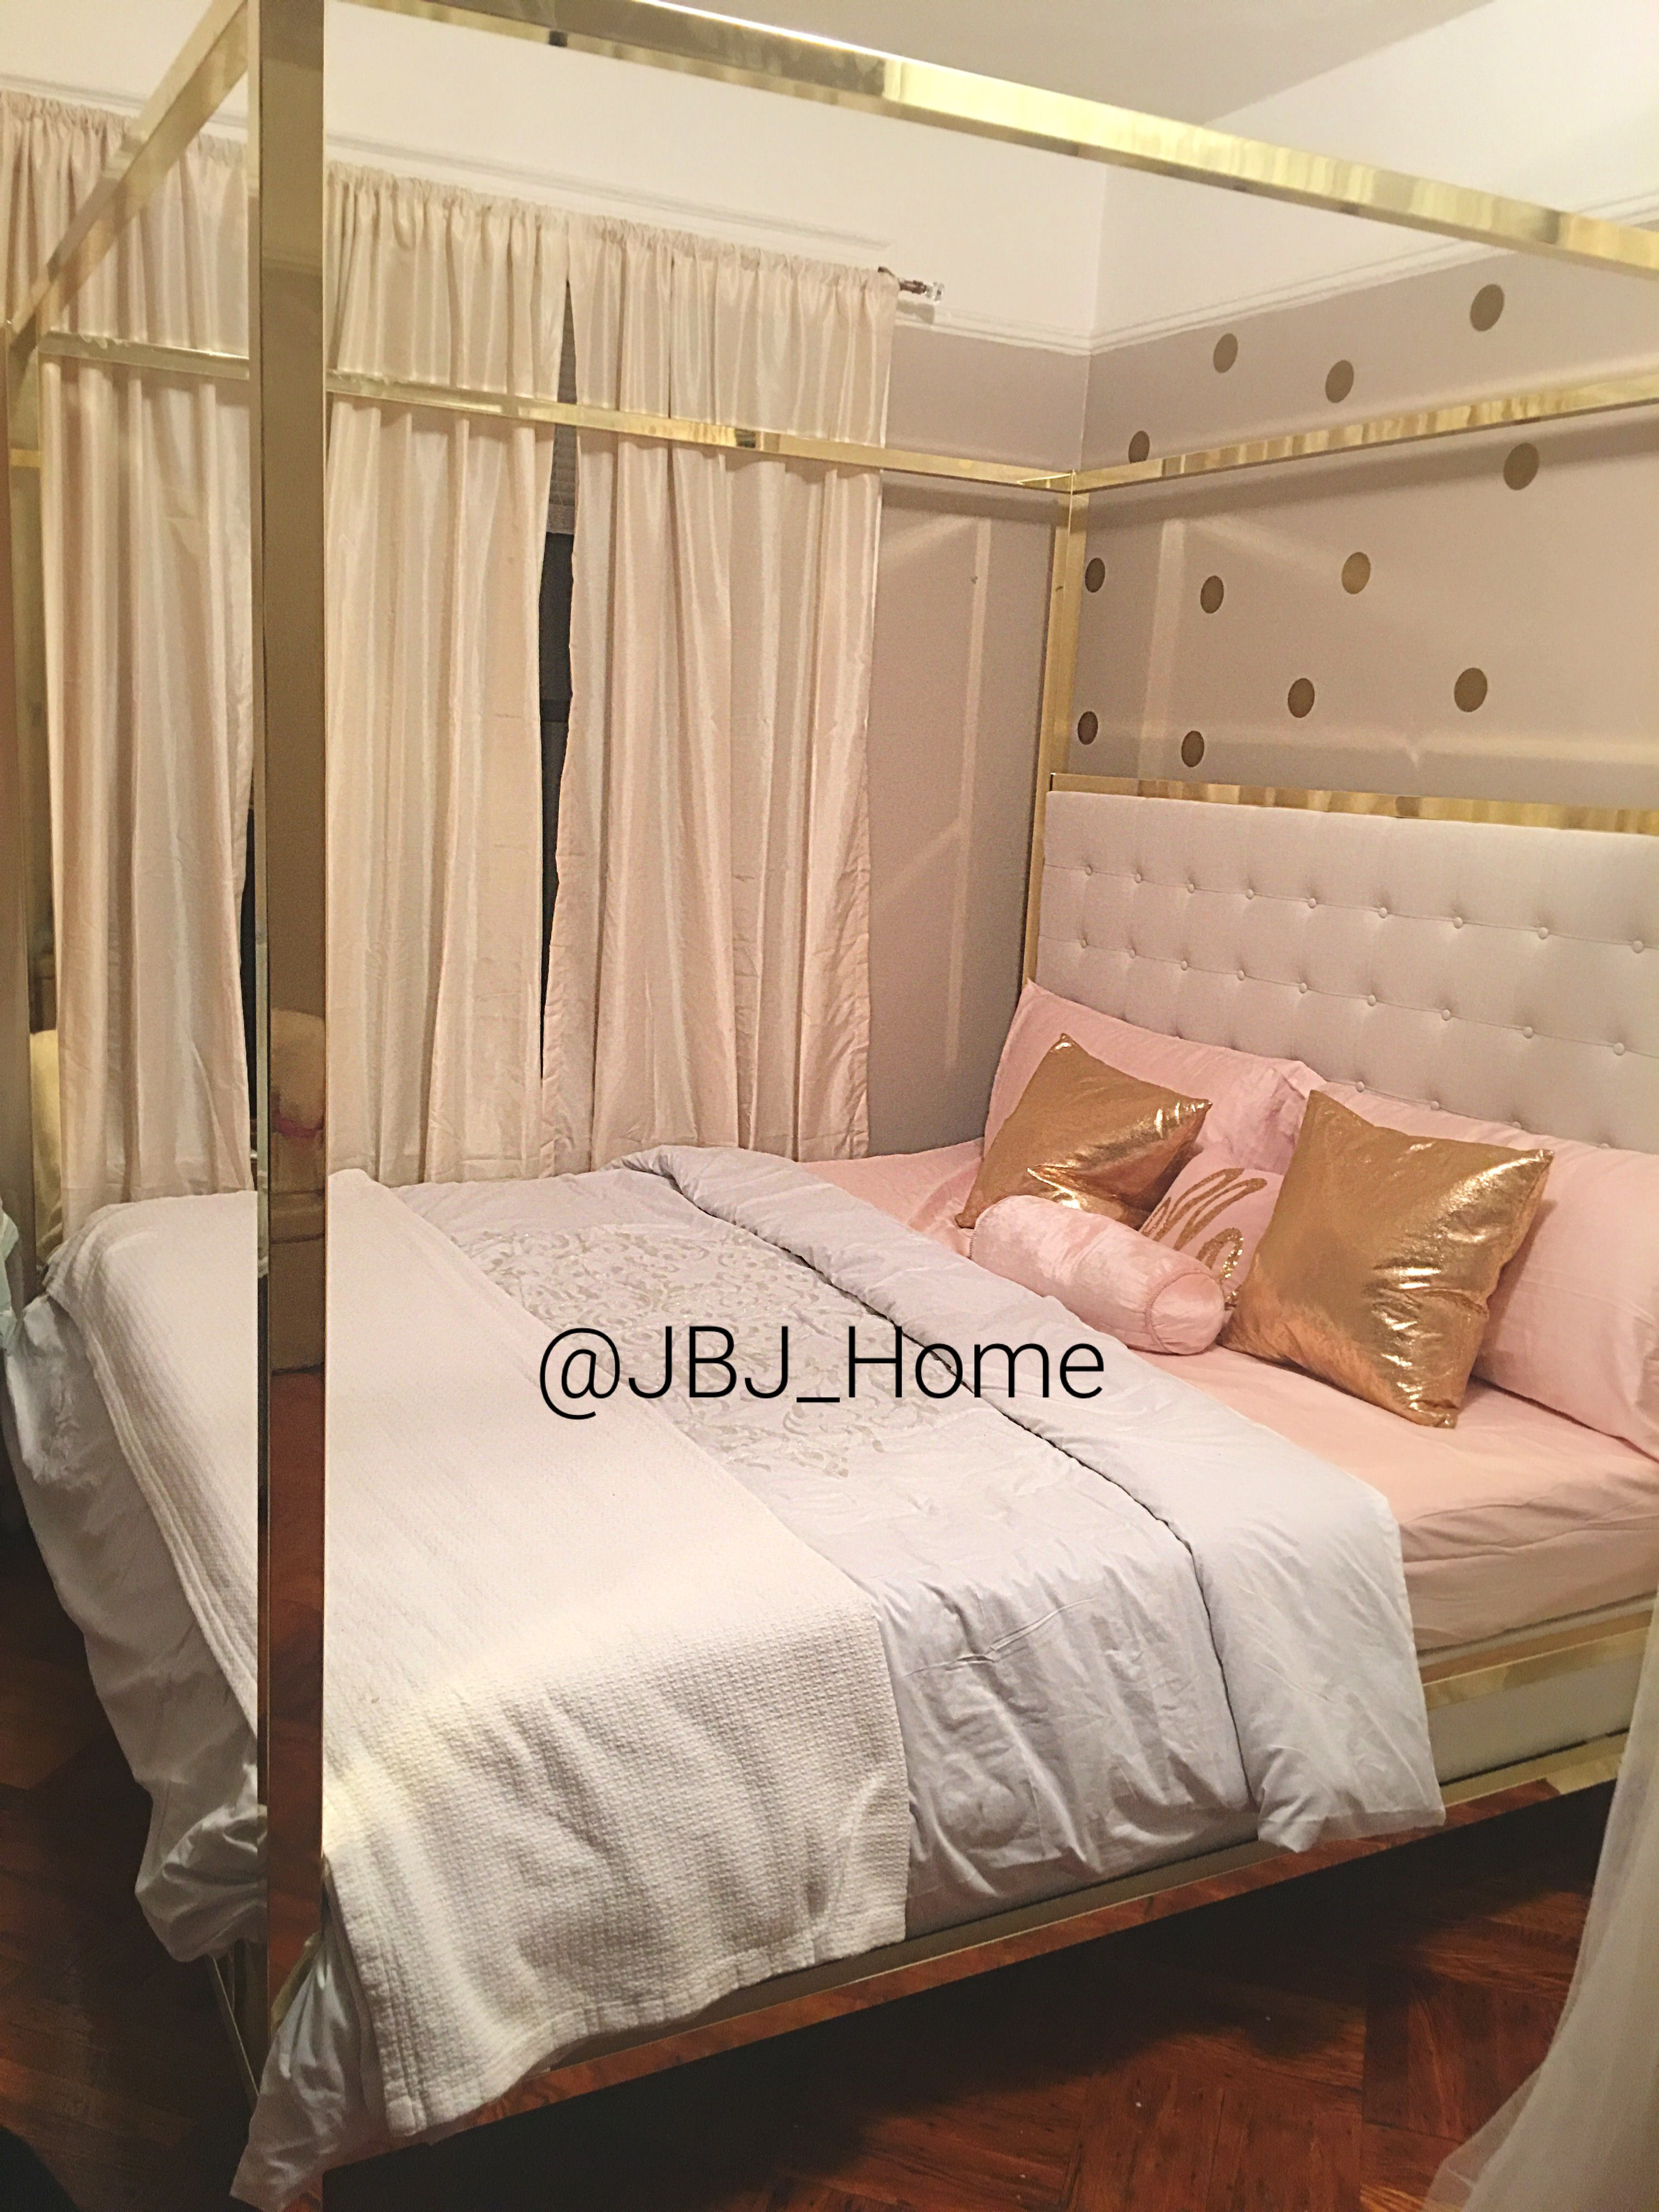 Just installed this beautiful gold mirrored canopy bed it is stunning and absolutely beautiful will be updating with pillows email decorbyjbjhomegmail